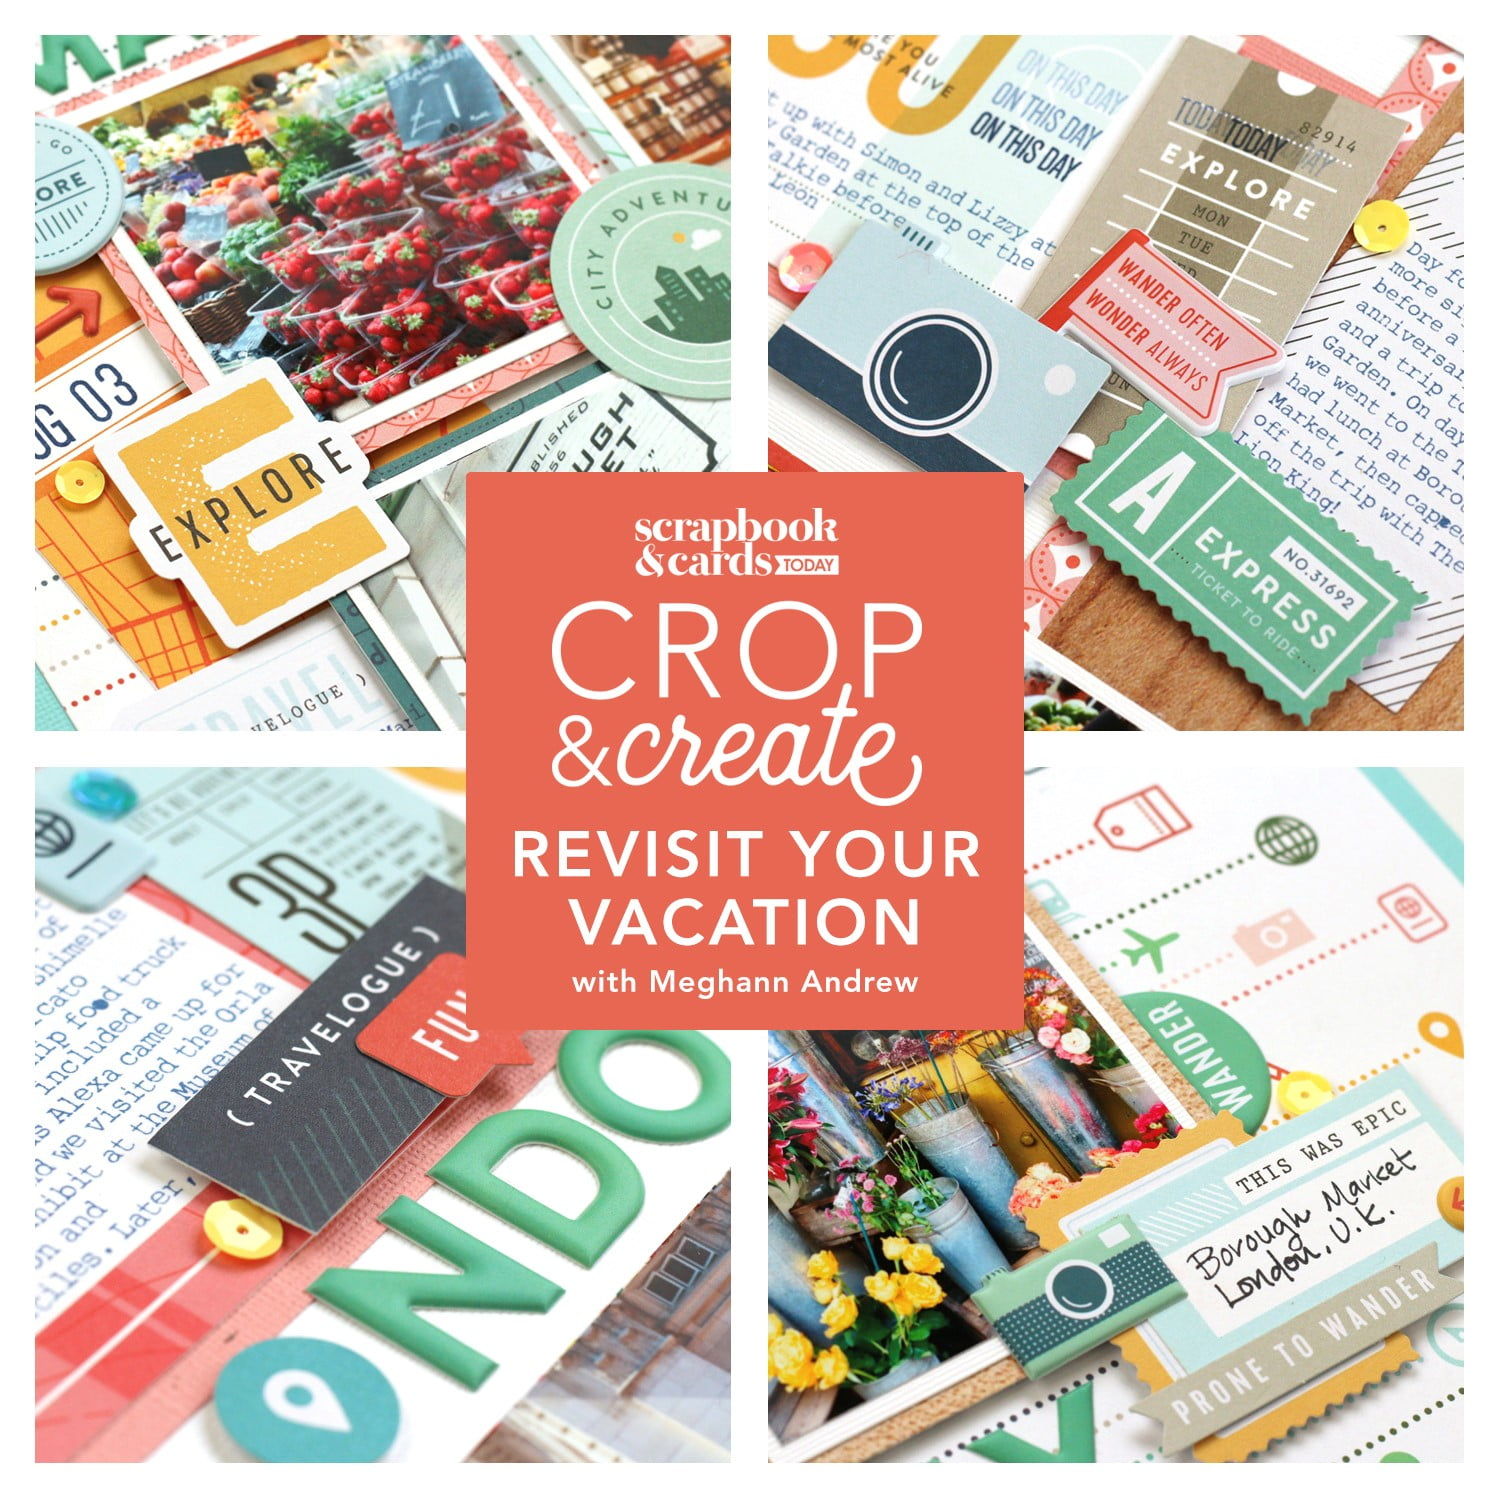 Re-Visit Your Vacation with Meghann Andrew